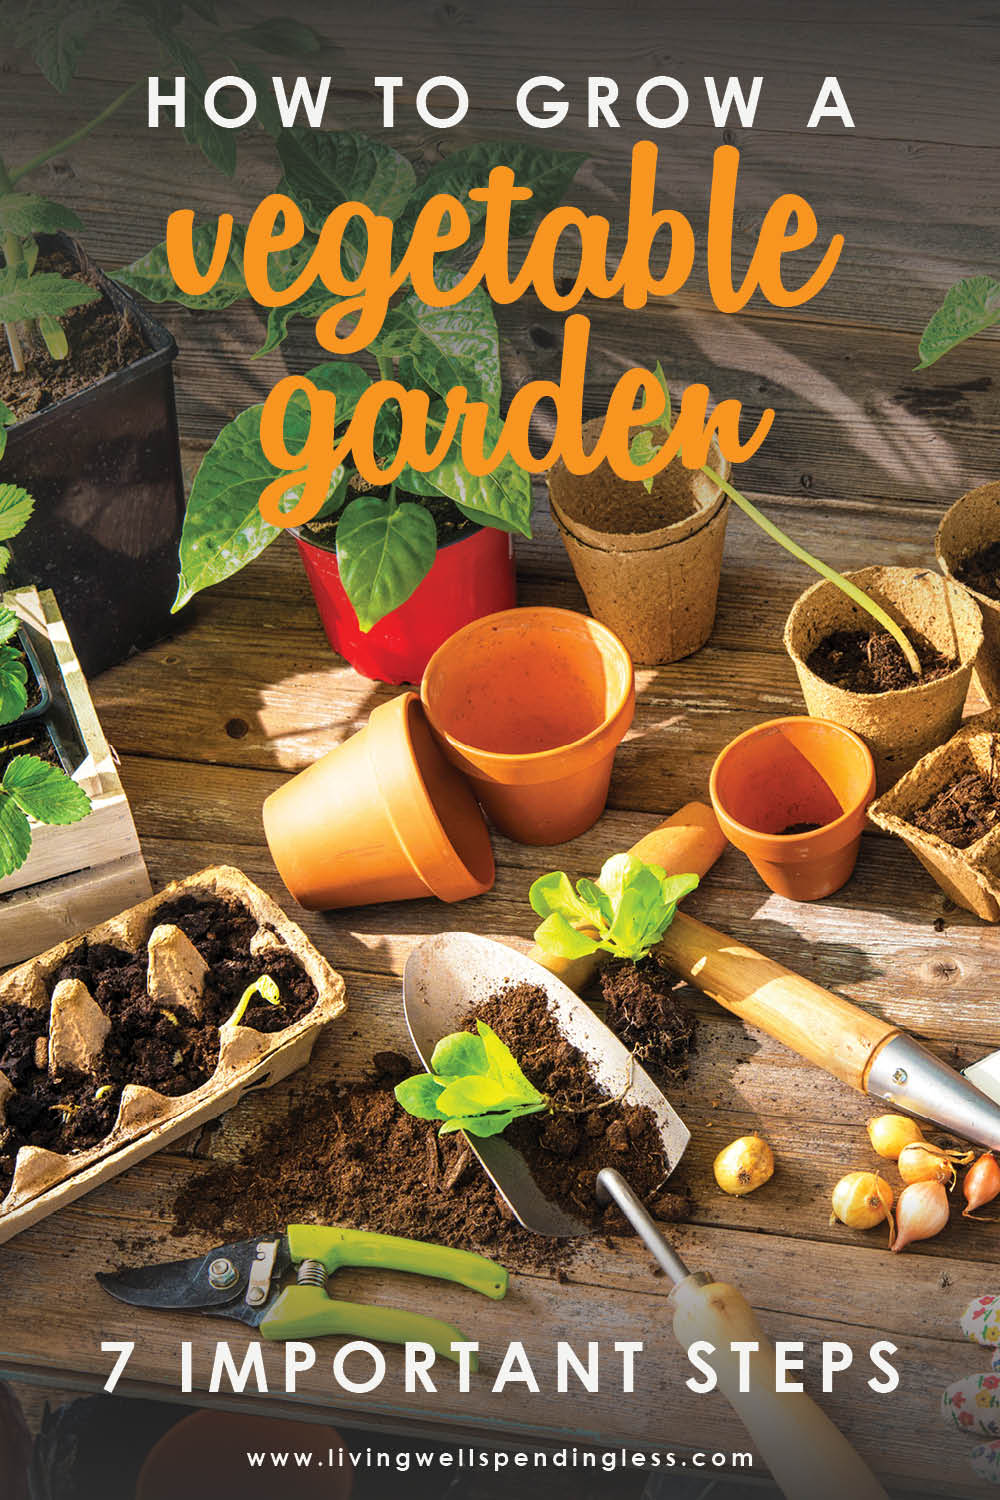 Want to grow your own food? These 7 important tips on how to grow a vegetable garden will help you make it happen no matter what your experience level!